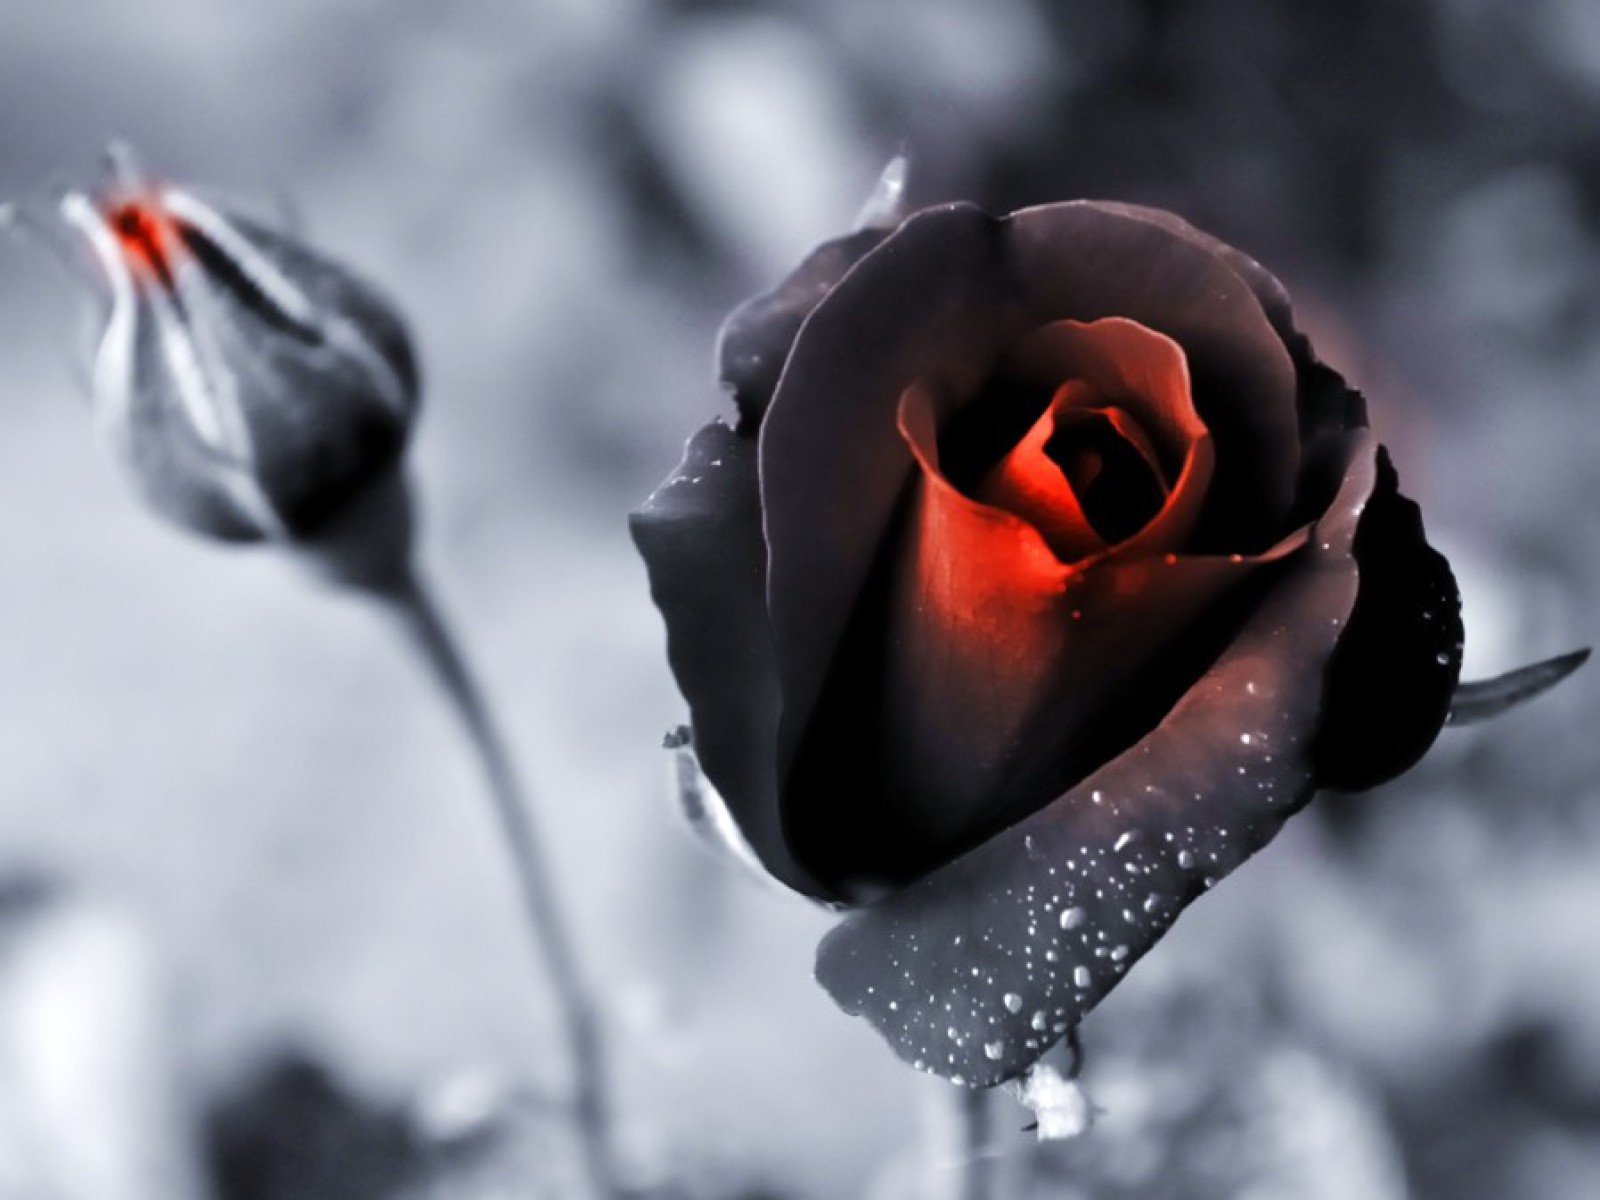 Black Rose HD Wallpaper